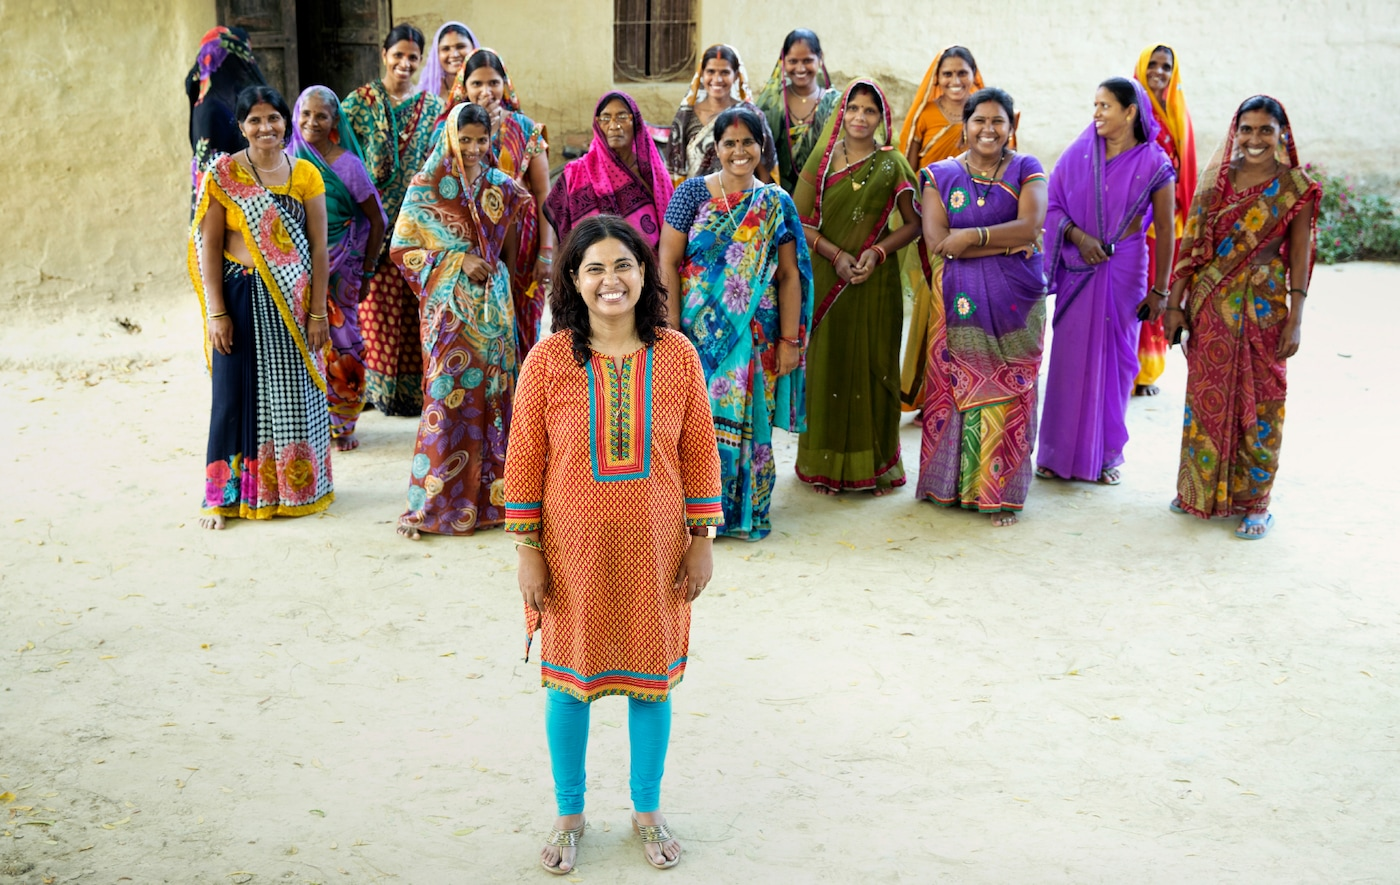 A group of about fifteen women in colourful, full-length dresses standing in an unpaved city street, all smiling.